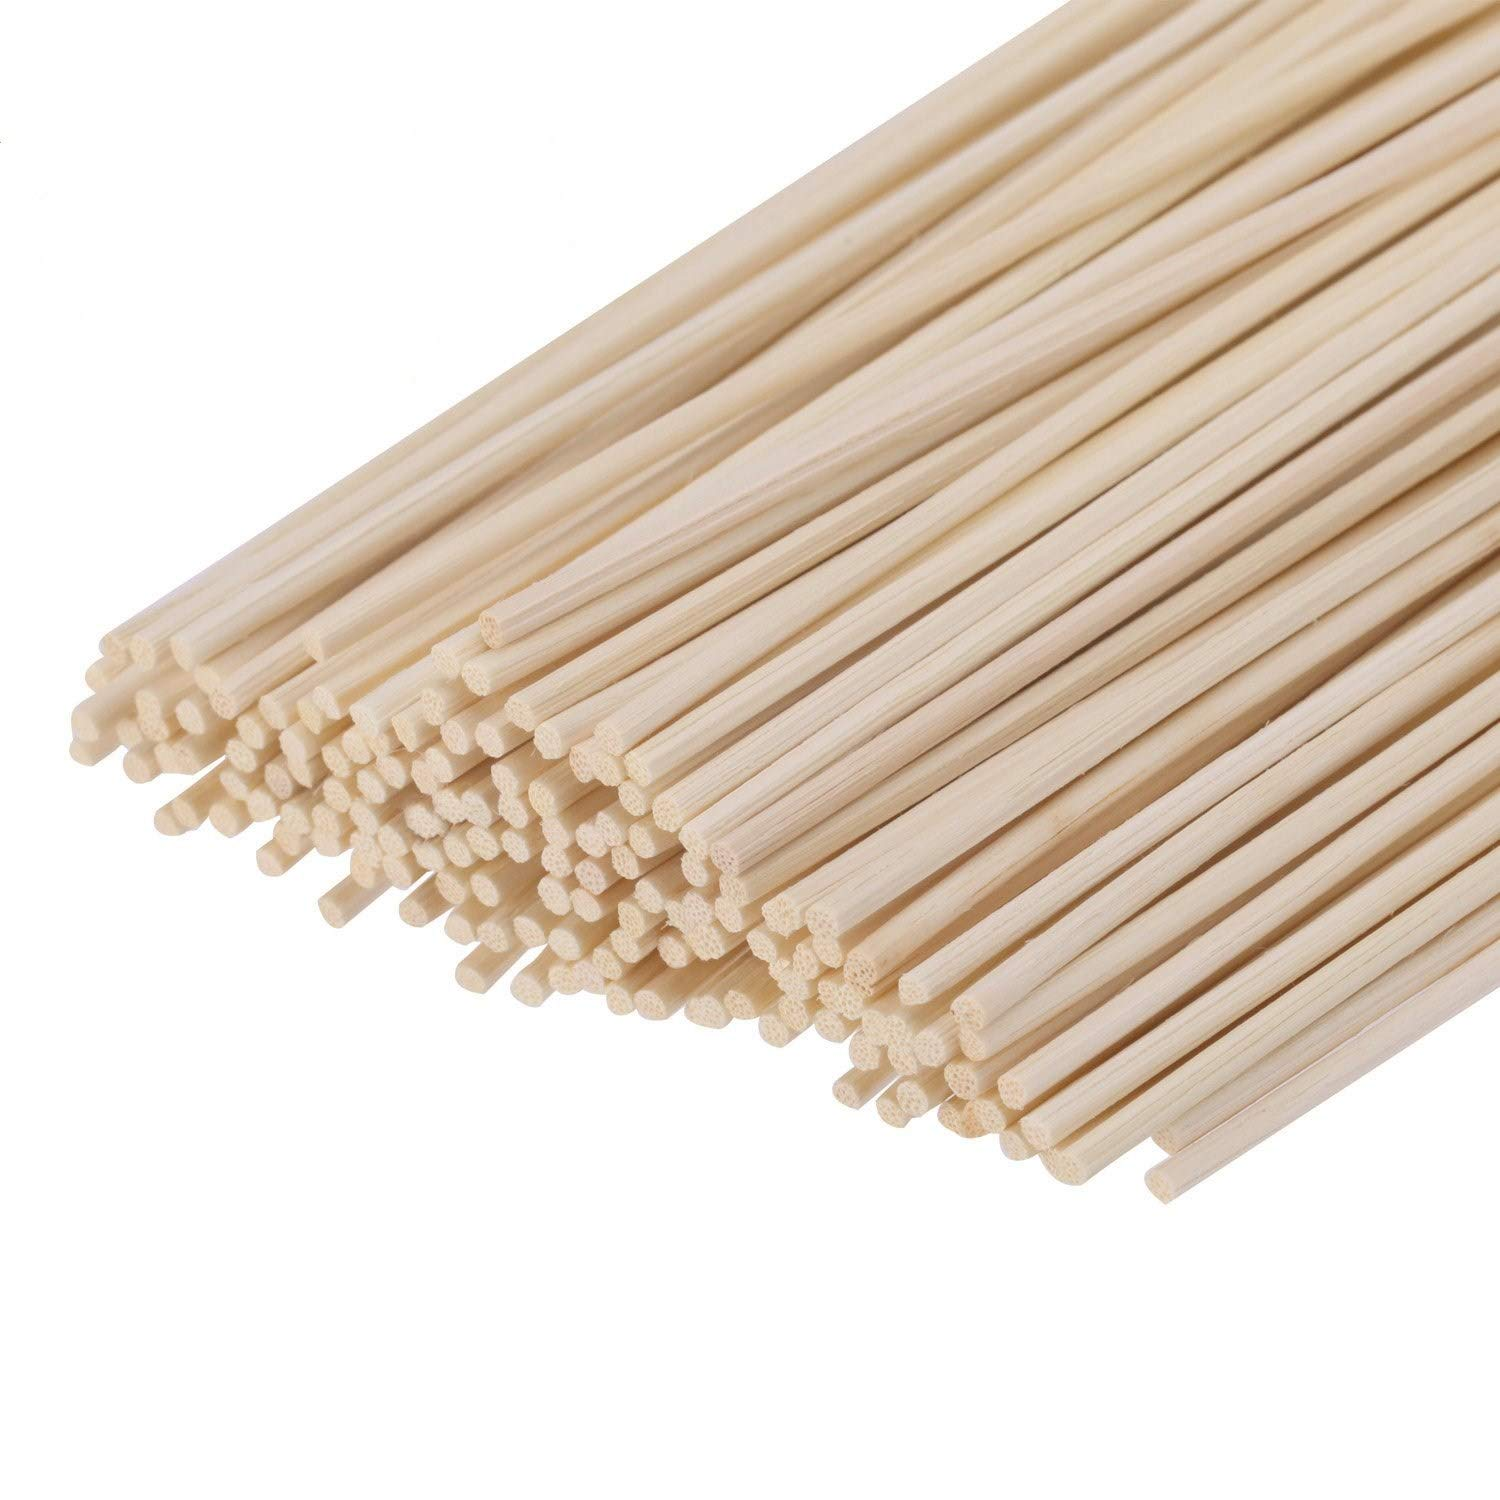 """HOSSIAN Set of 100 Reed Diffuser Sticks - Wood Rattan-Reed Sticks -Diffuser Glass Bottles-Diffuser Refills- Spa-Aromatherapy(7"""" 17cm)"""